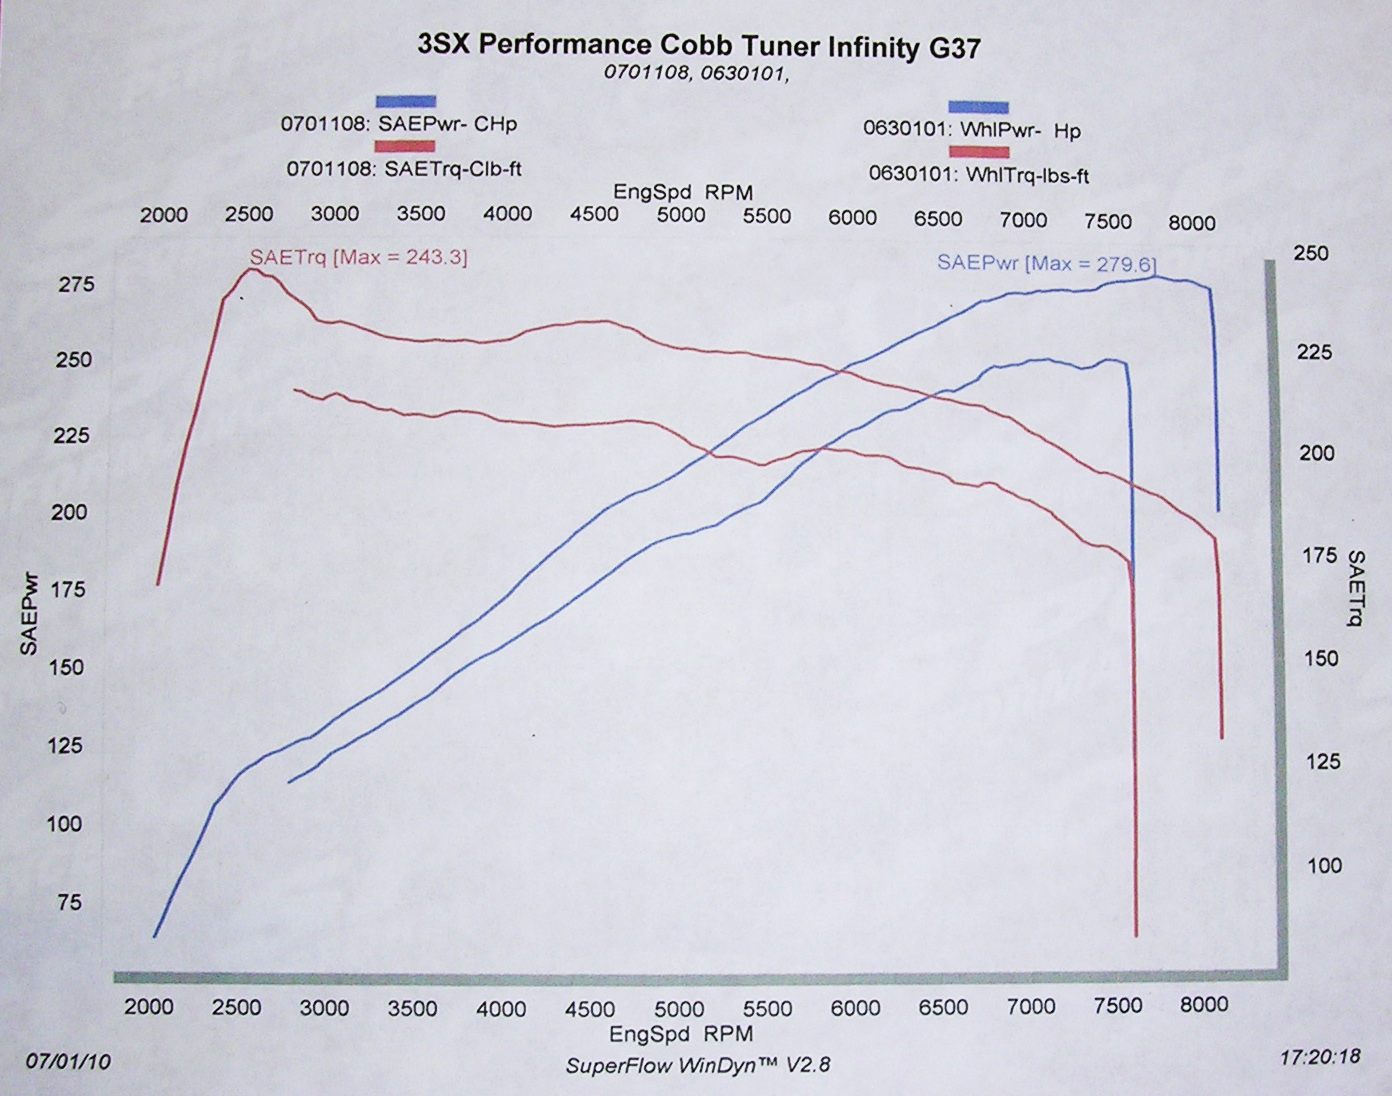 Infiniti G37 Dyno Graph Results